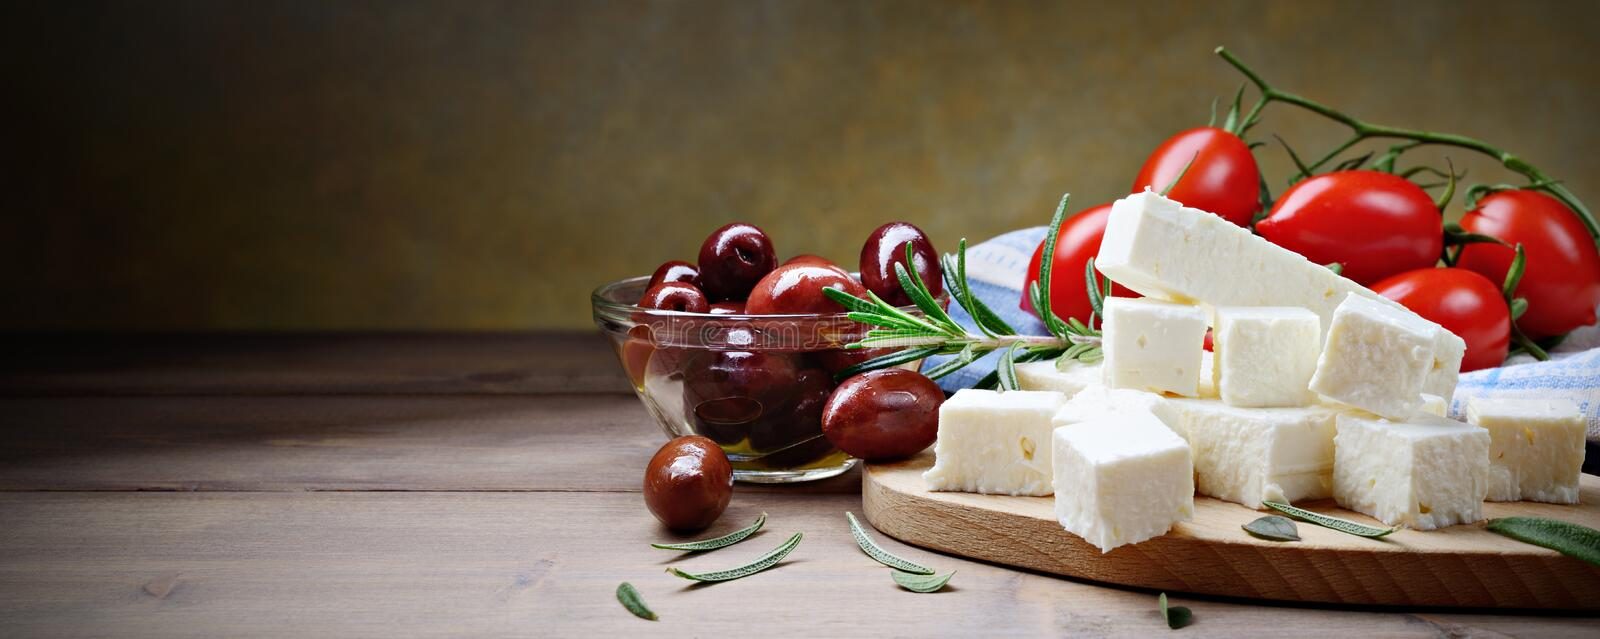 Feta cheese with kalamata olives, tomatoes and rosemary on a wooden background with space for text. Feta and kalamata olives two famous Greek products here royalty free stock photos